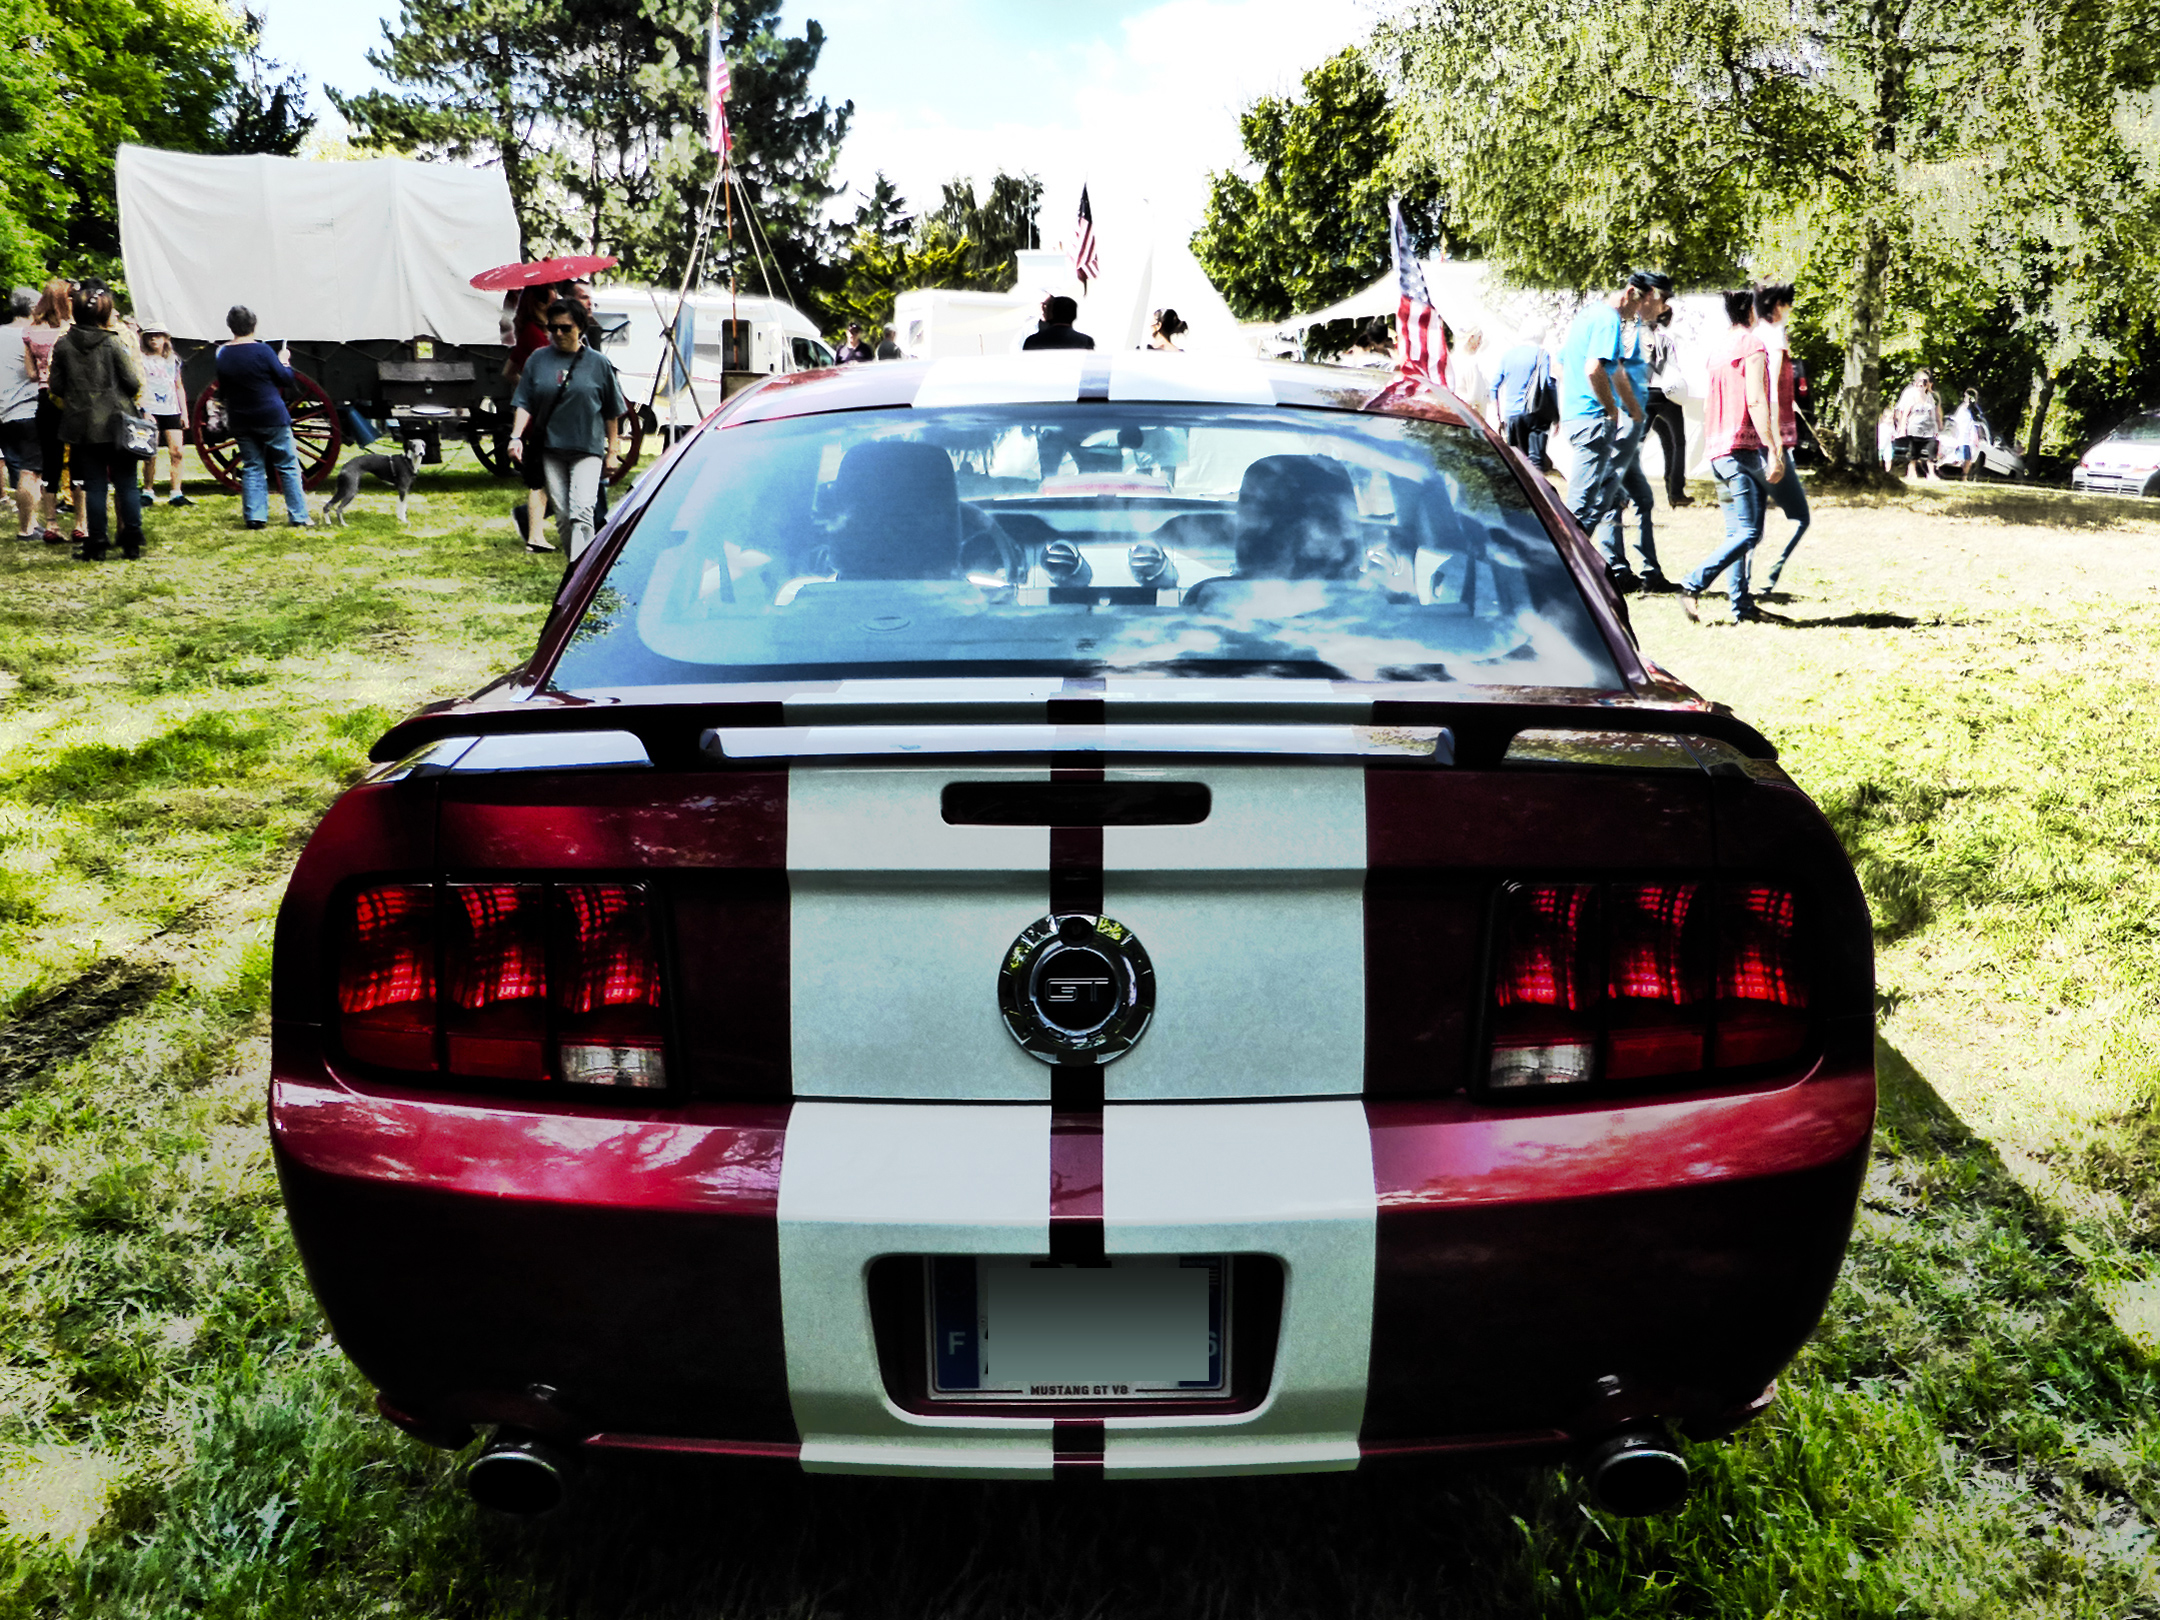 Ford Mustang GT V8 - 2005 - rear - US Cars and Bikes 2017 - Photo by ELJ DESIGNMOTEUR